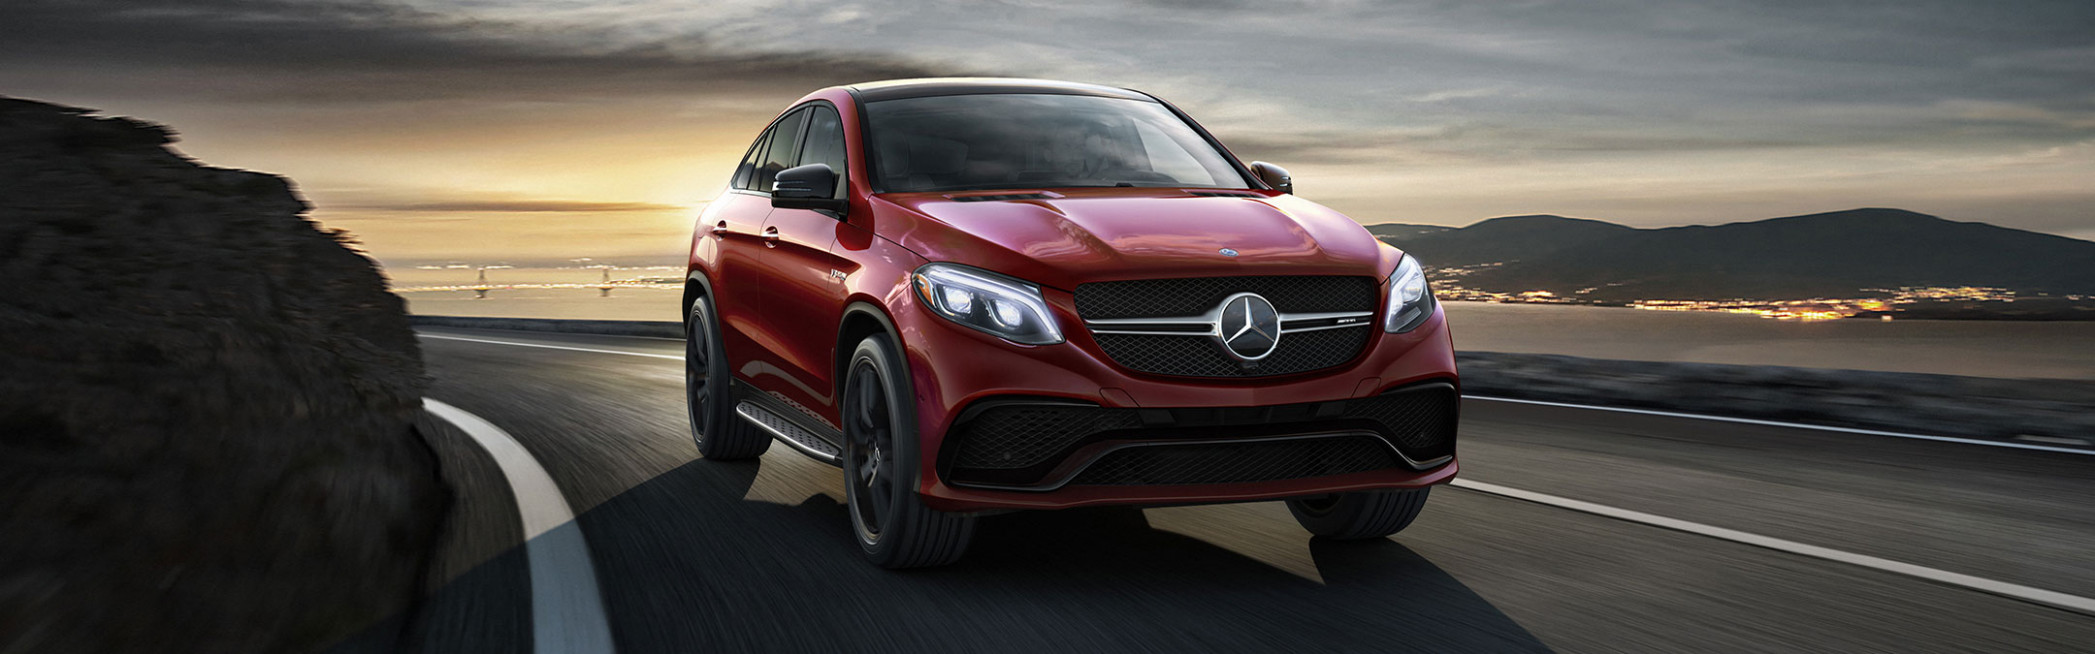 March 12 AMG Lease Offers | Mercedes-Benz of Littleton - mercedes 2020 offers